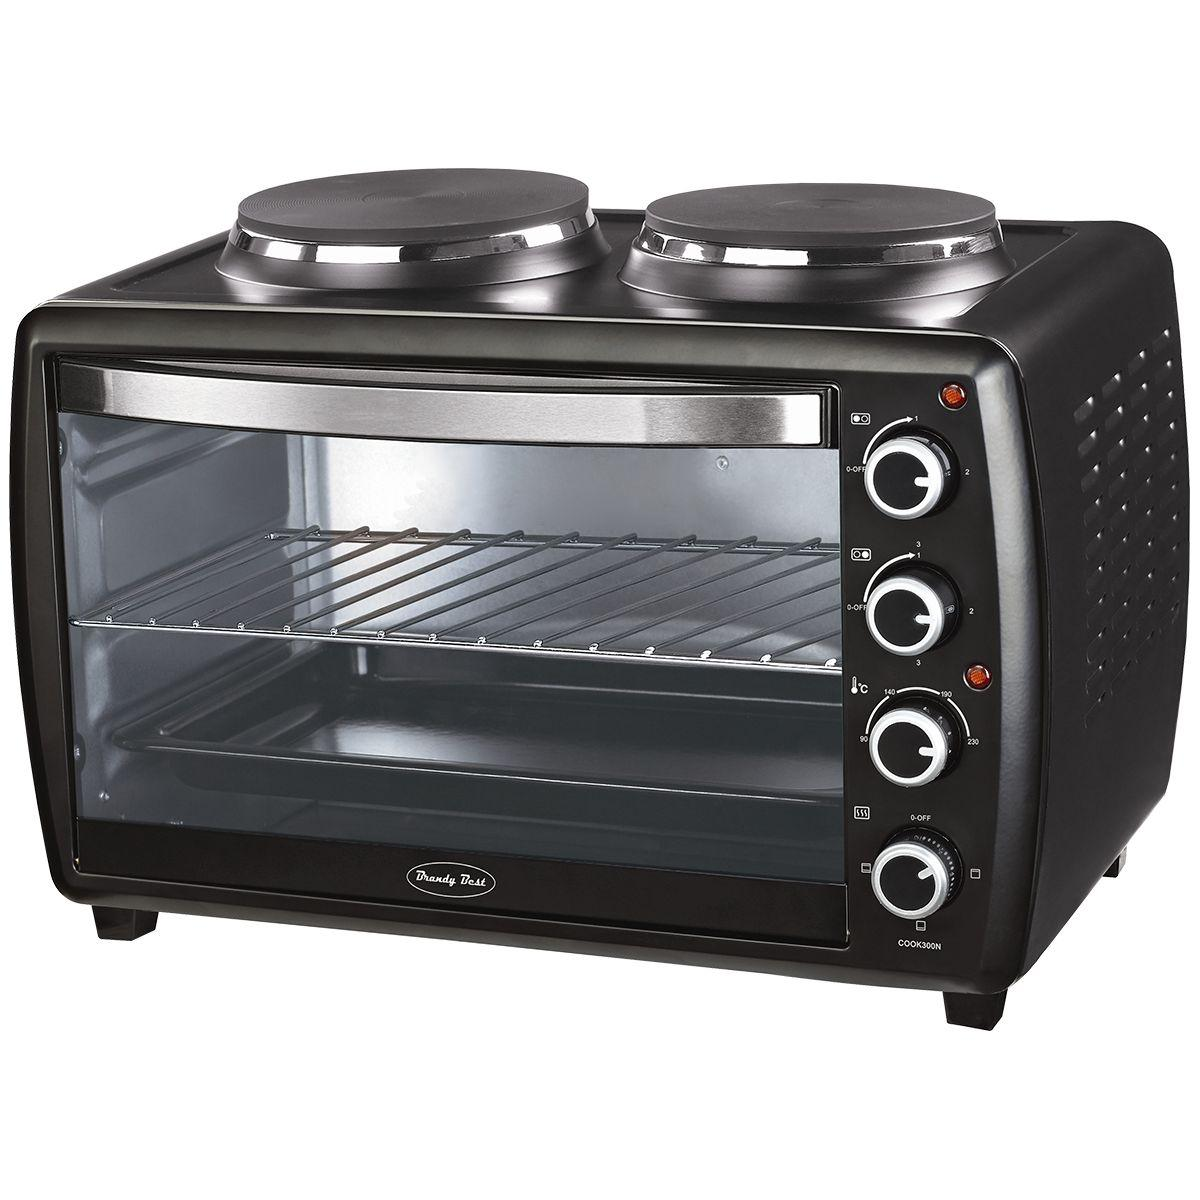 Mini four compact brandy best cook300n - 2% de remise immédiate avec le code : cool2 (photo)